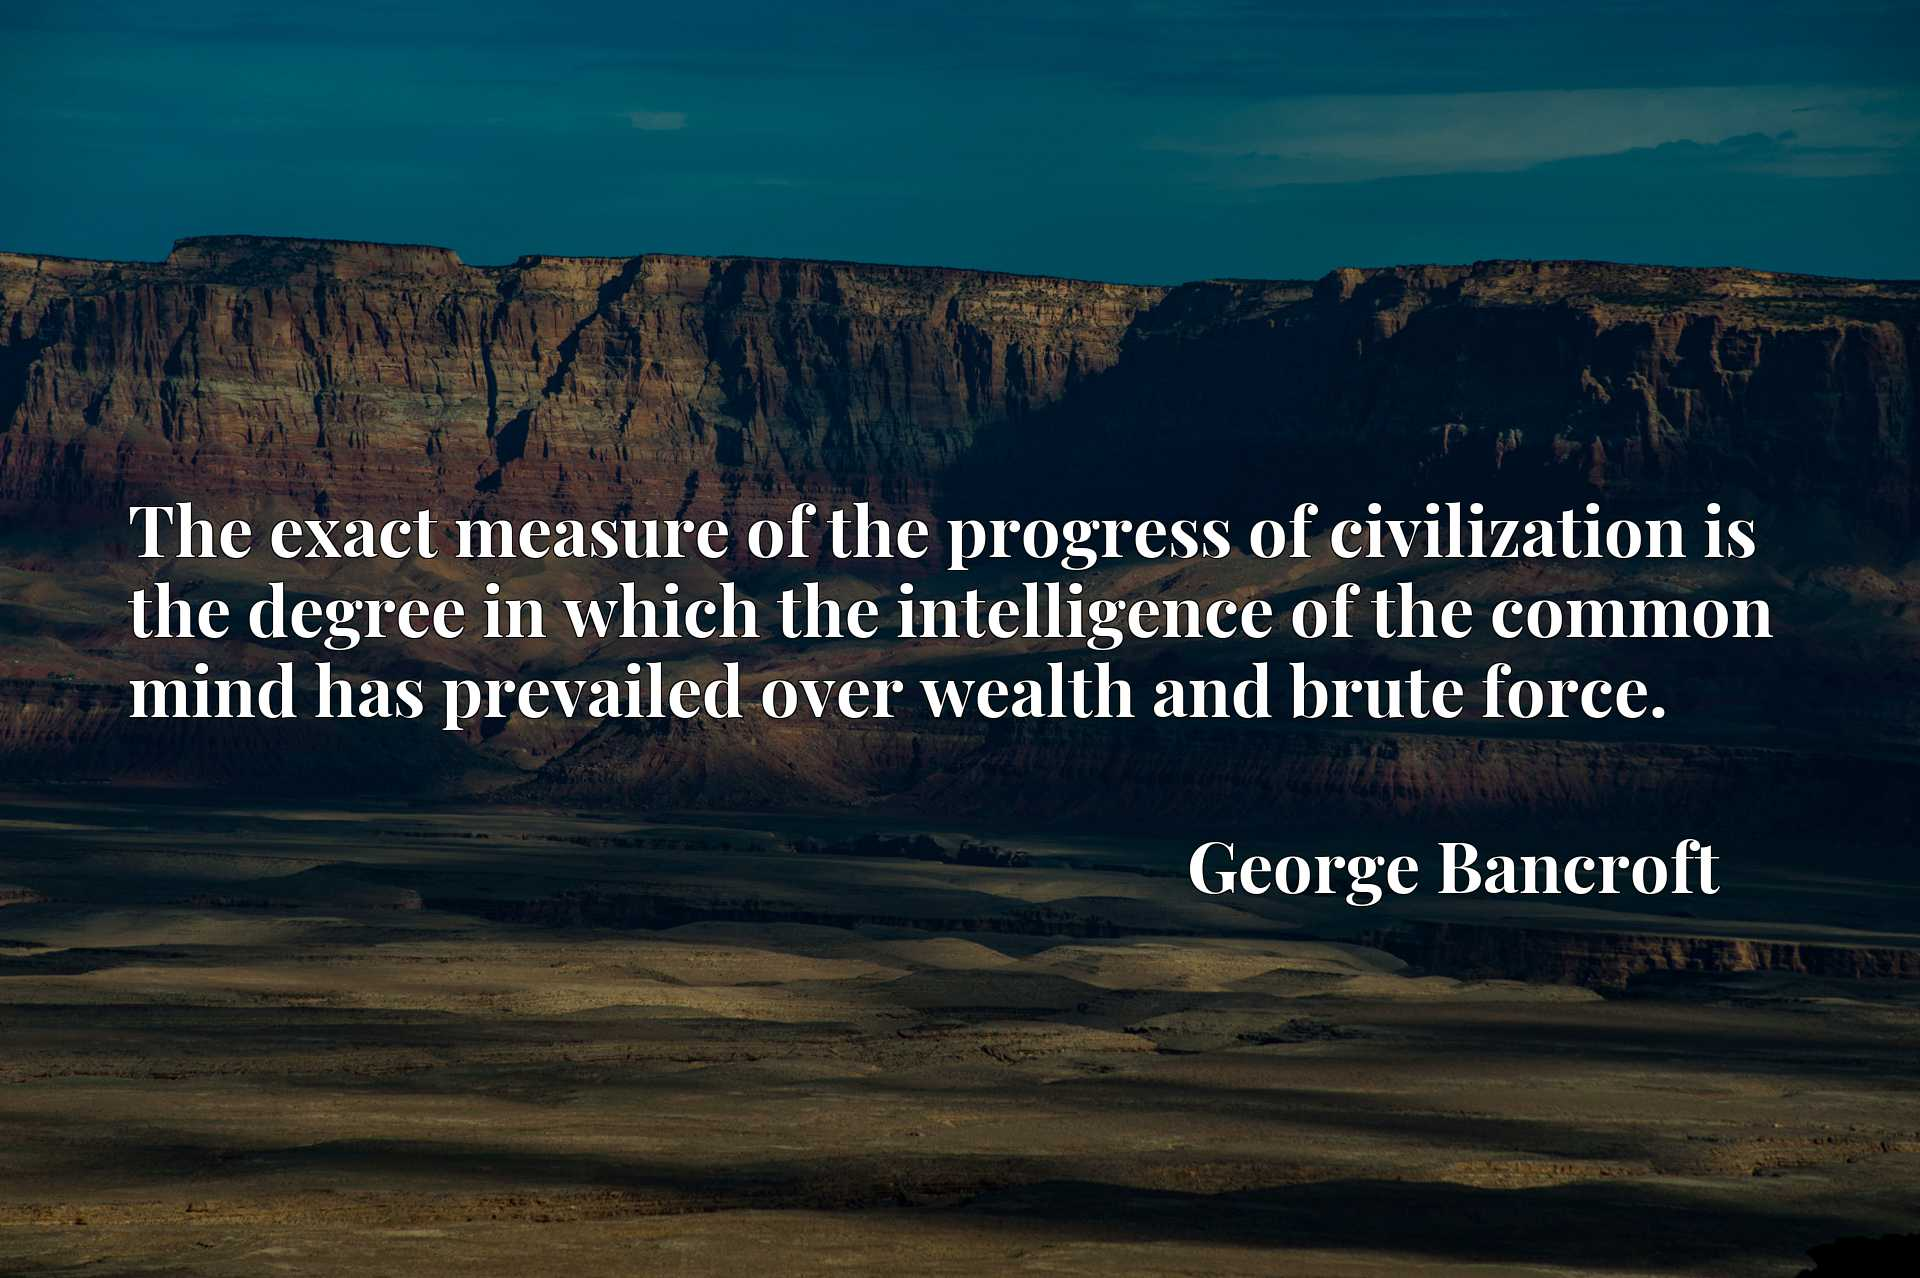 The exact measure of the progress of civilization is the degree in which the intelligence of the common mind has prevailed over wealth and brute force.